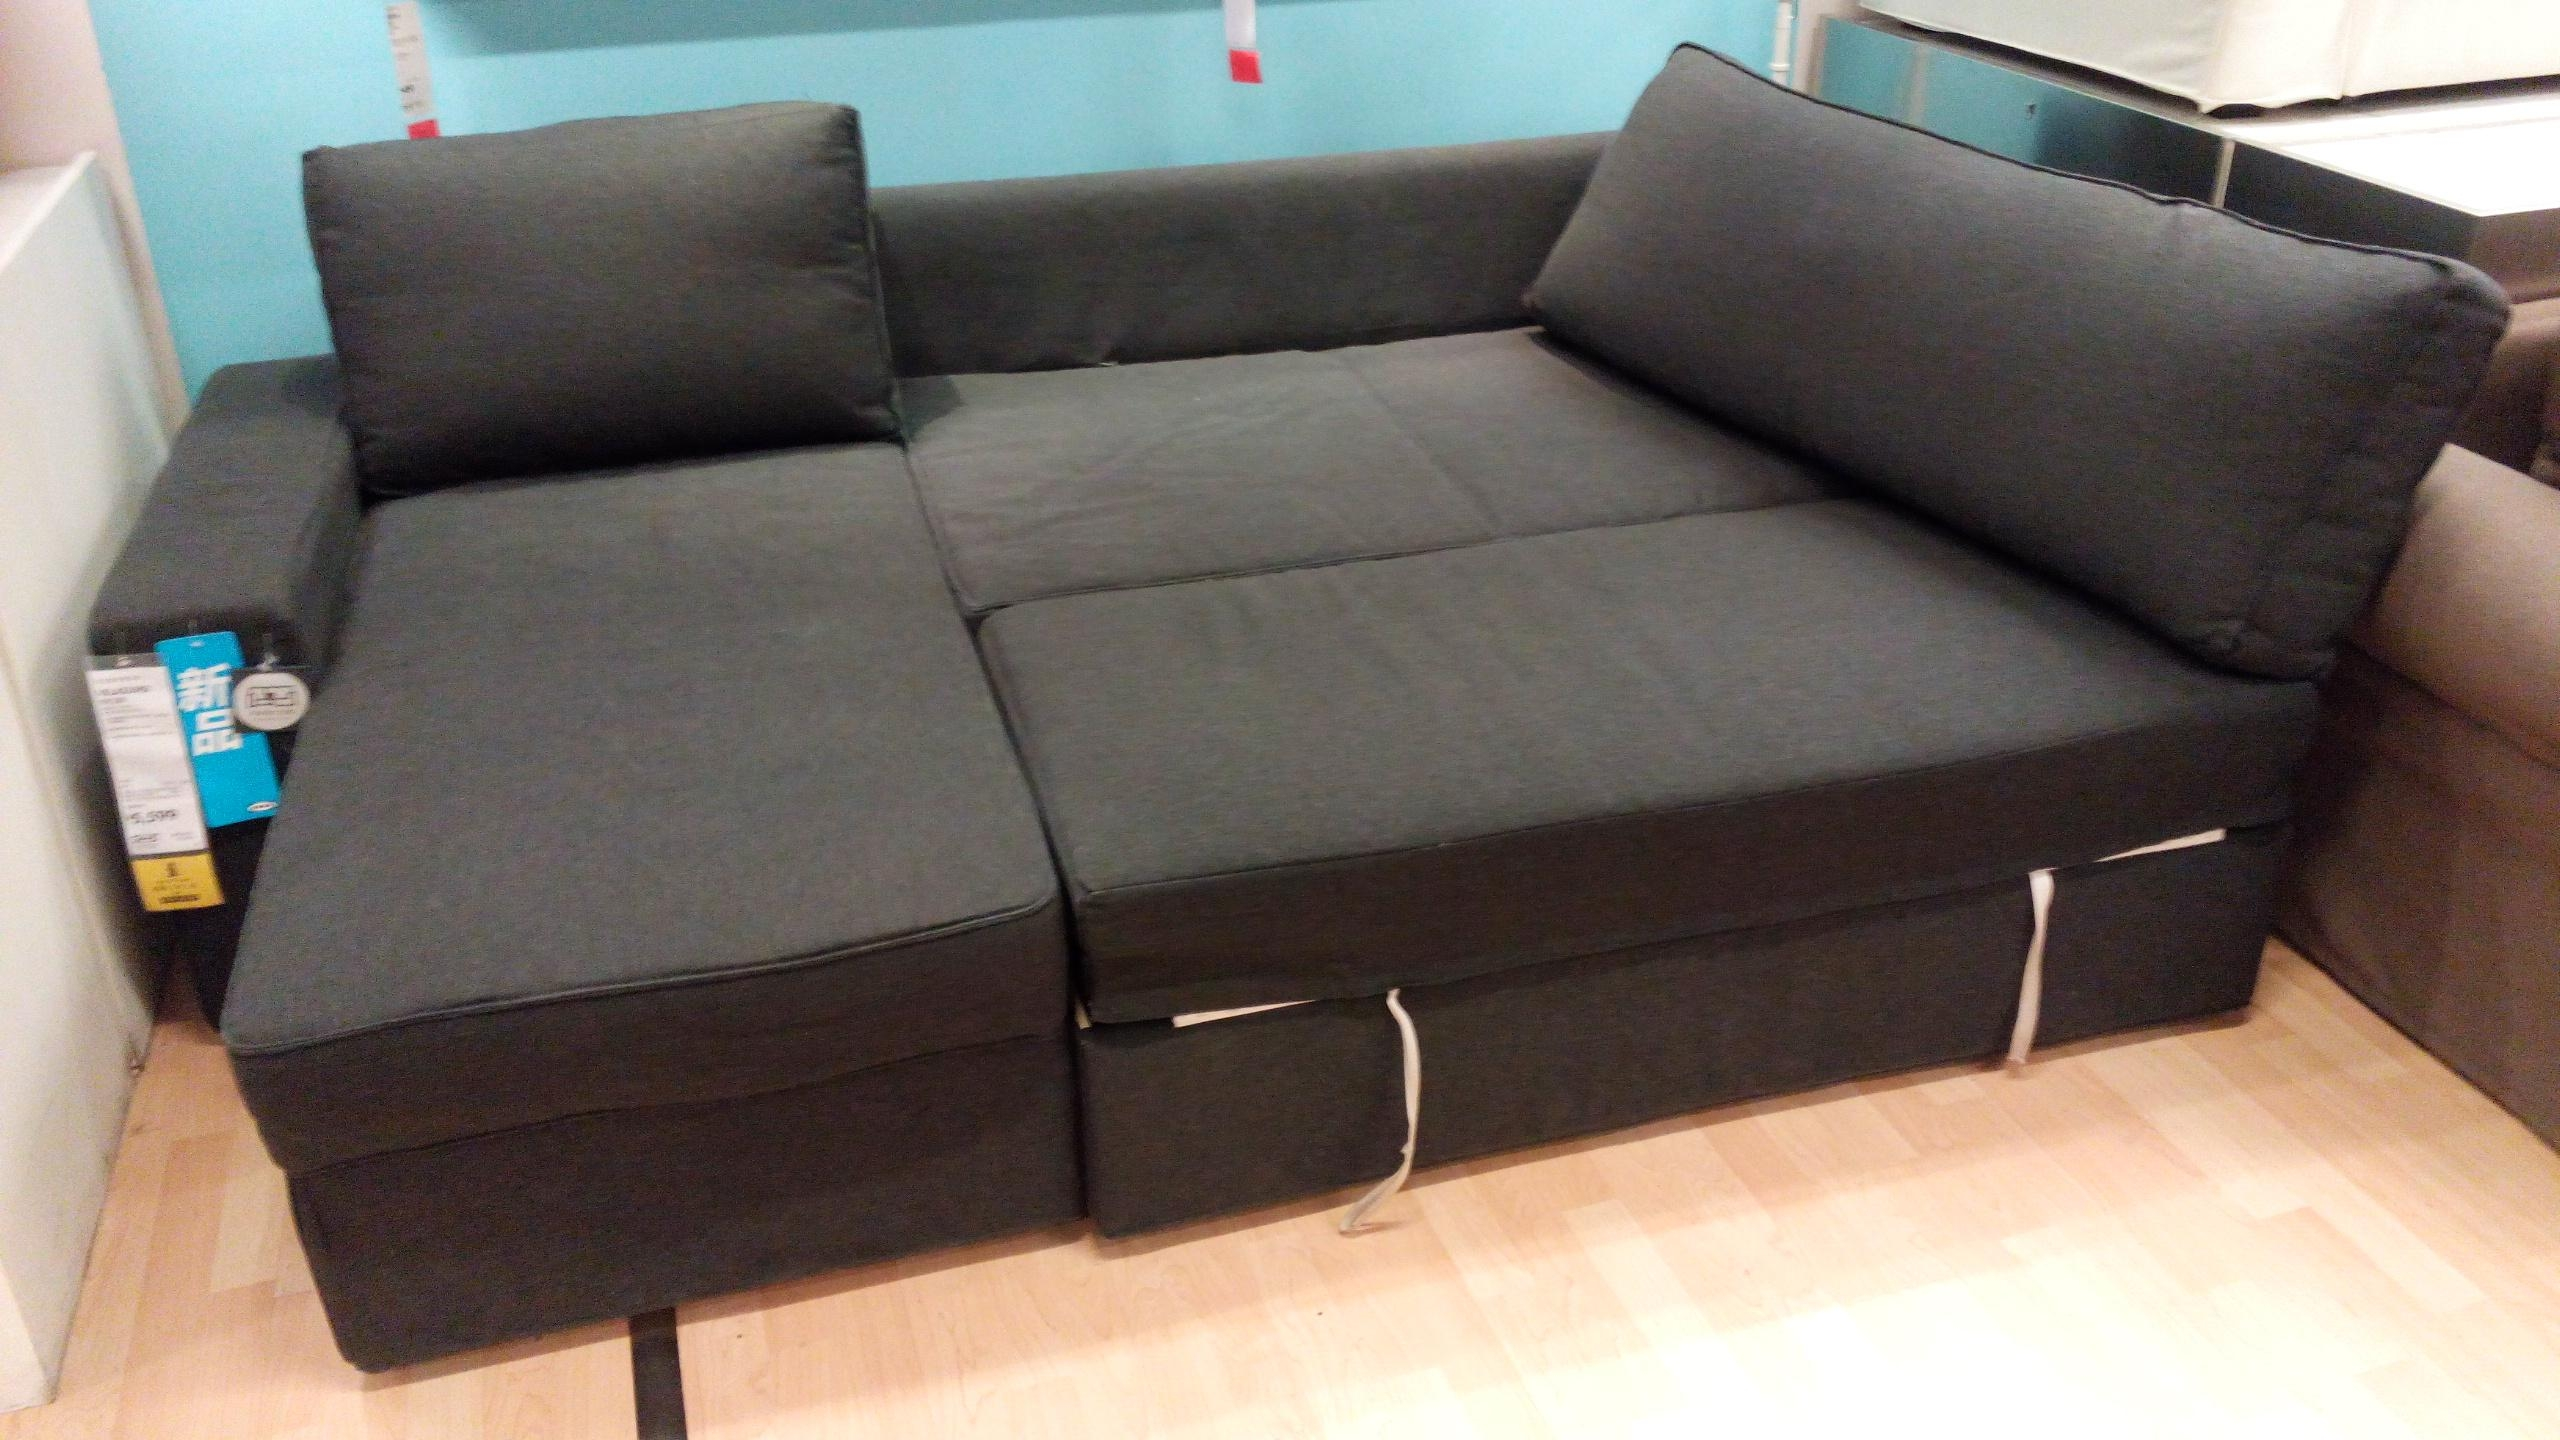 sectional chairs furniture fabric best convertible lounge of longue couch with bed kacy beds sofa chaise sleeper accent